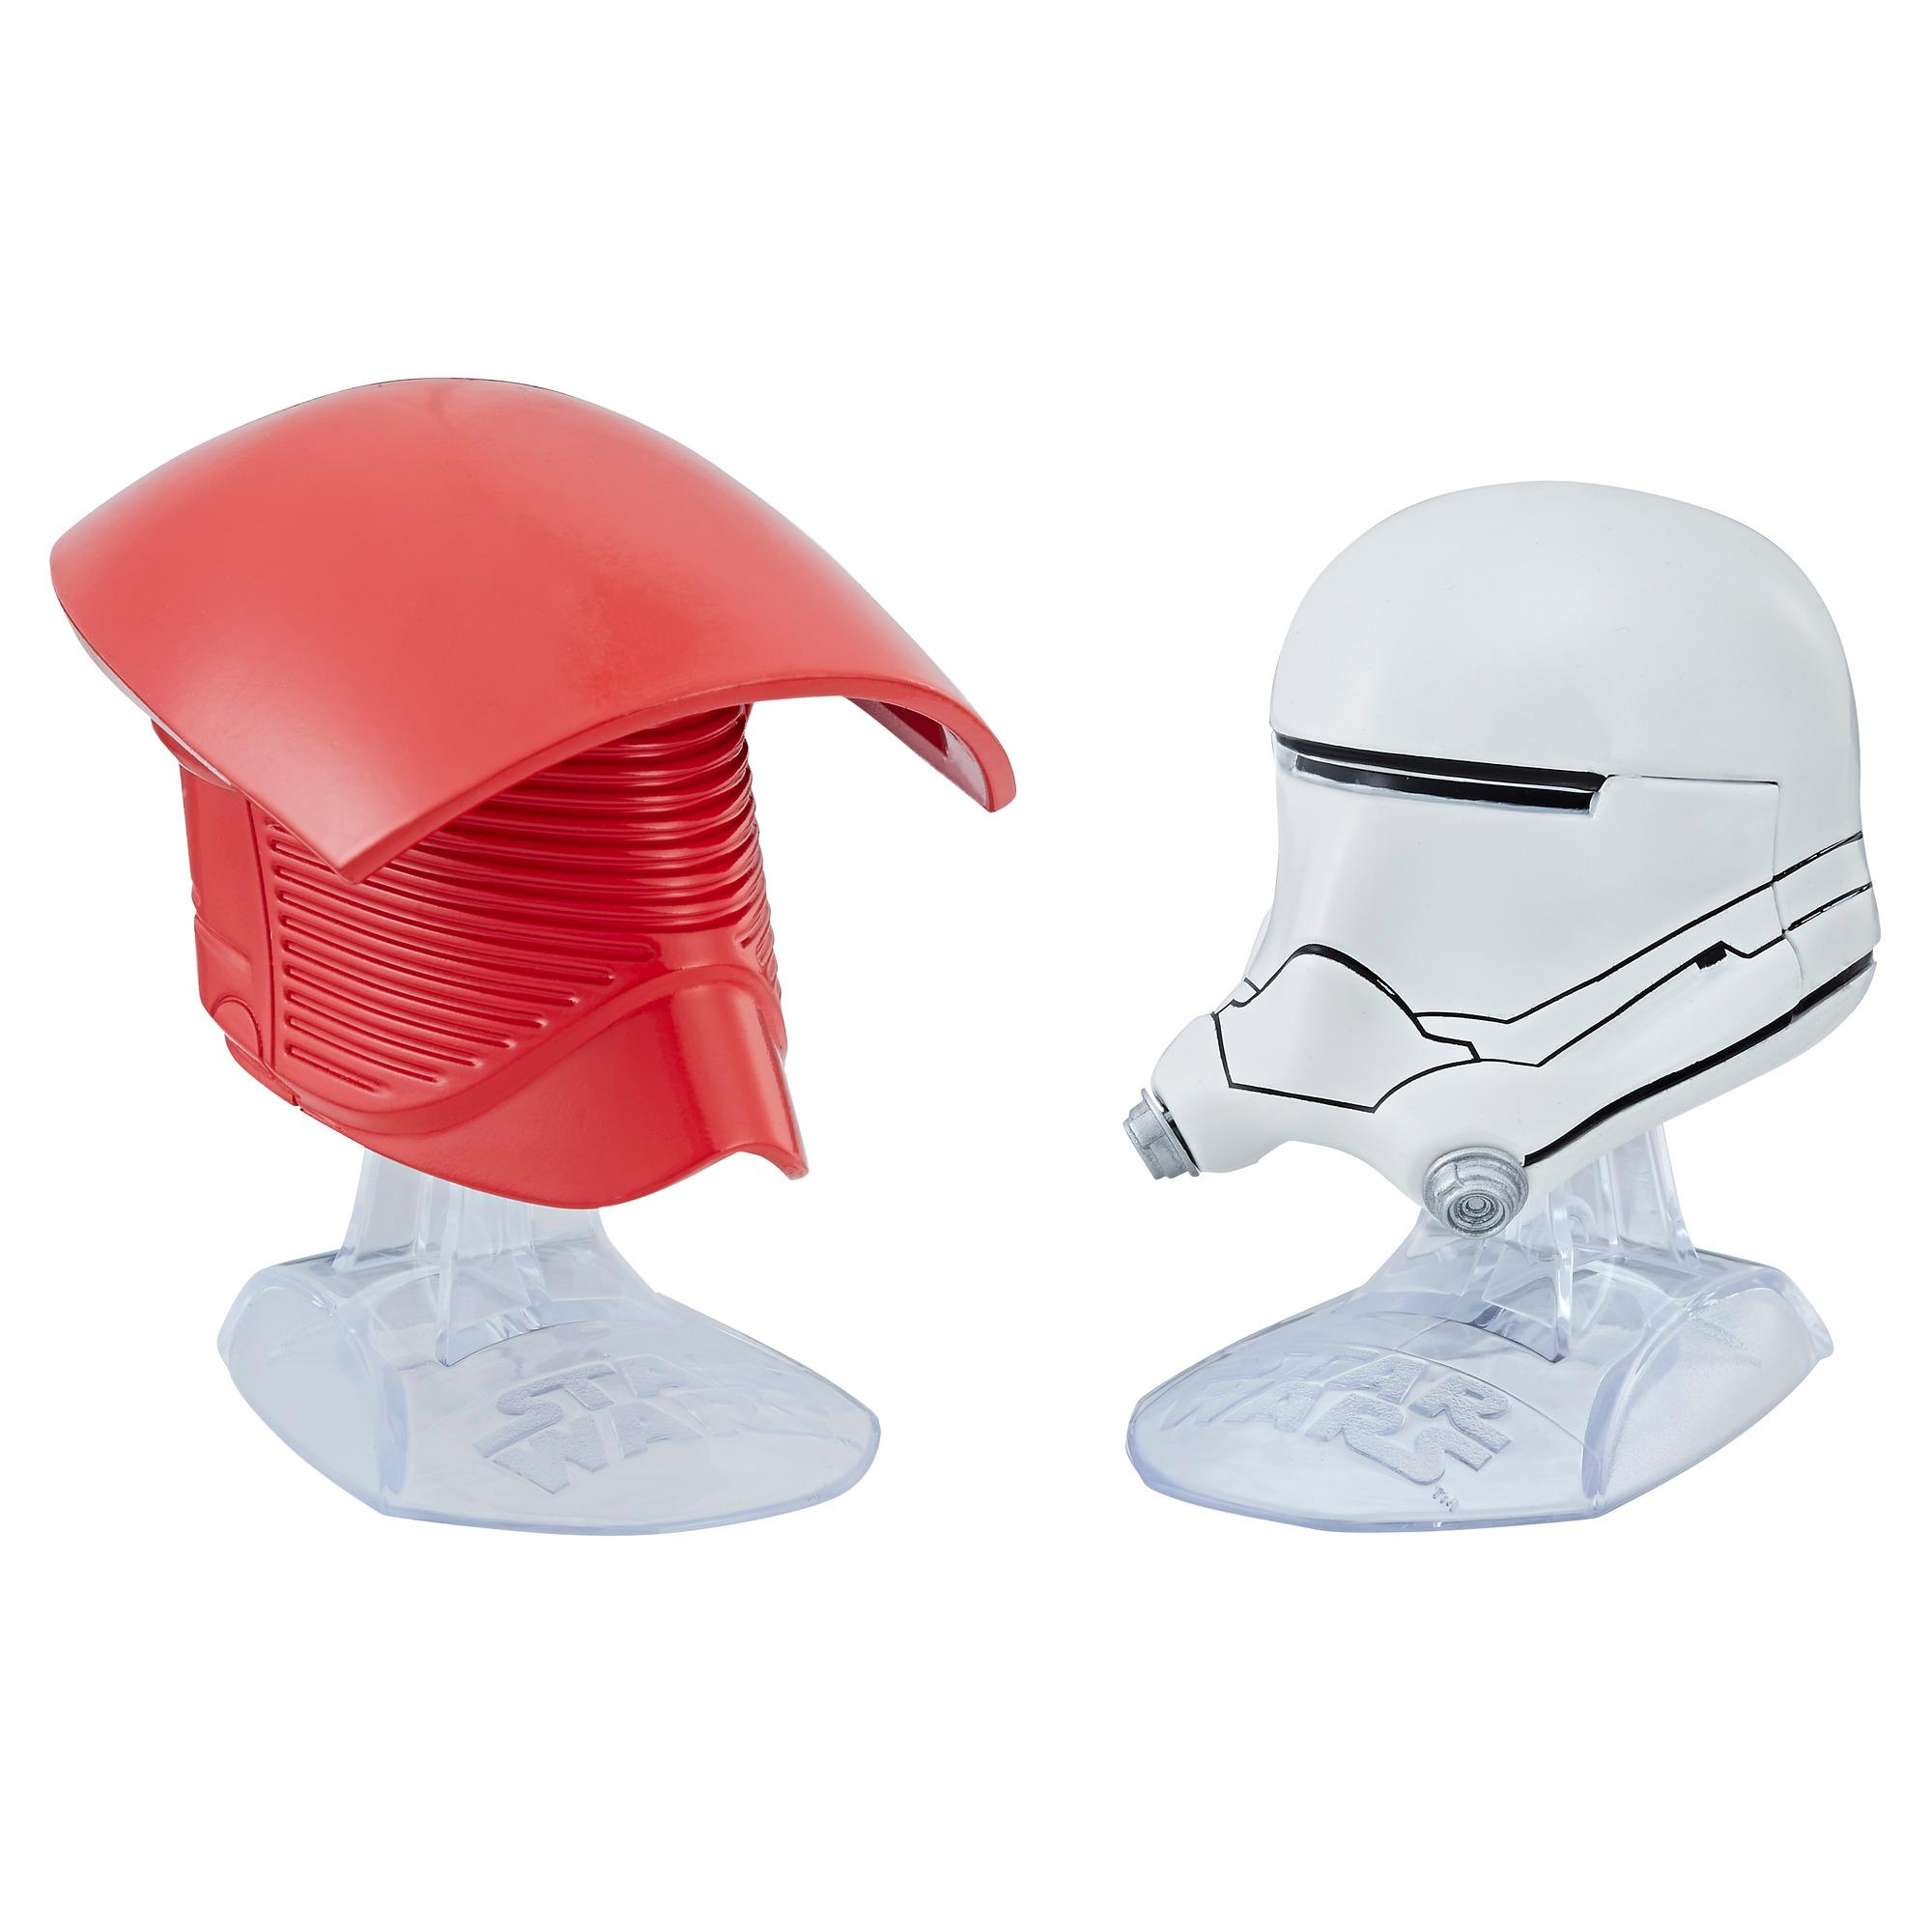 Star Wars Titanium Series Elite Praetorian Guard & First Order Flametrooper Helmets